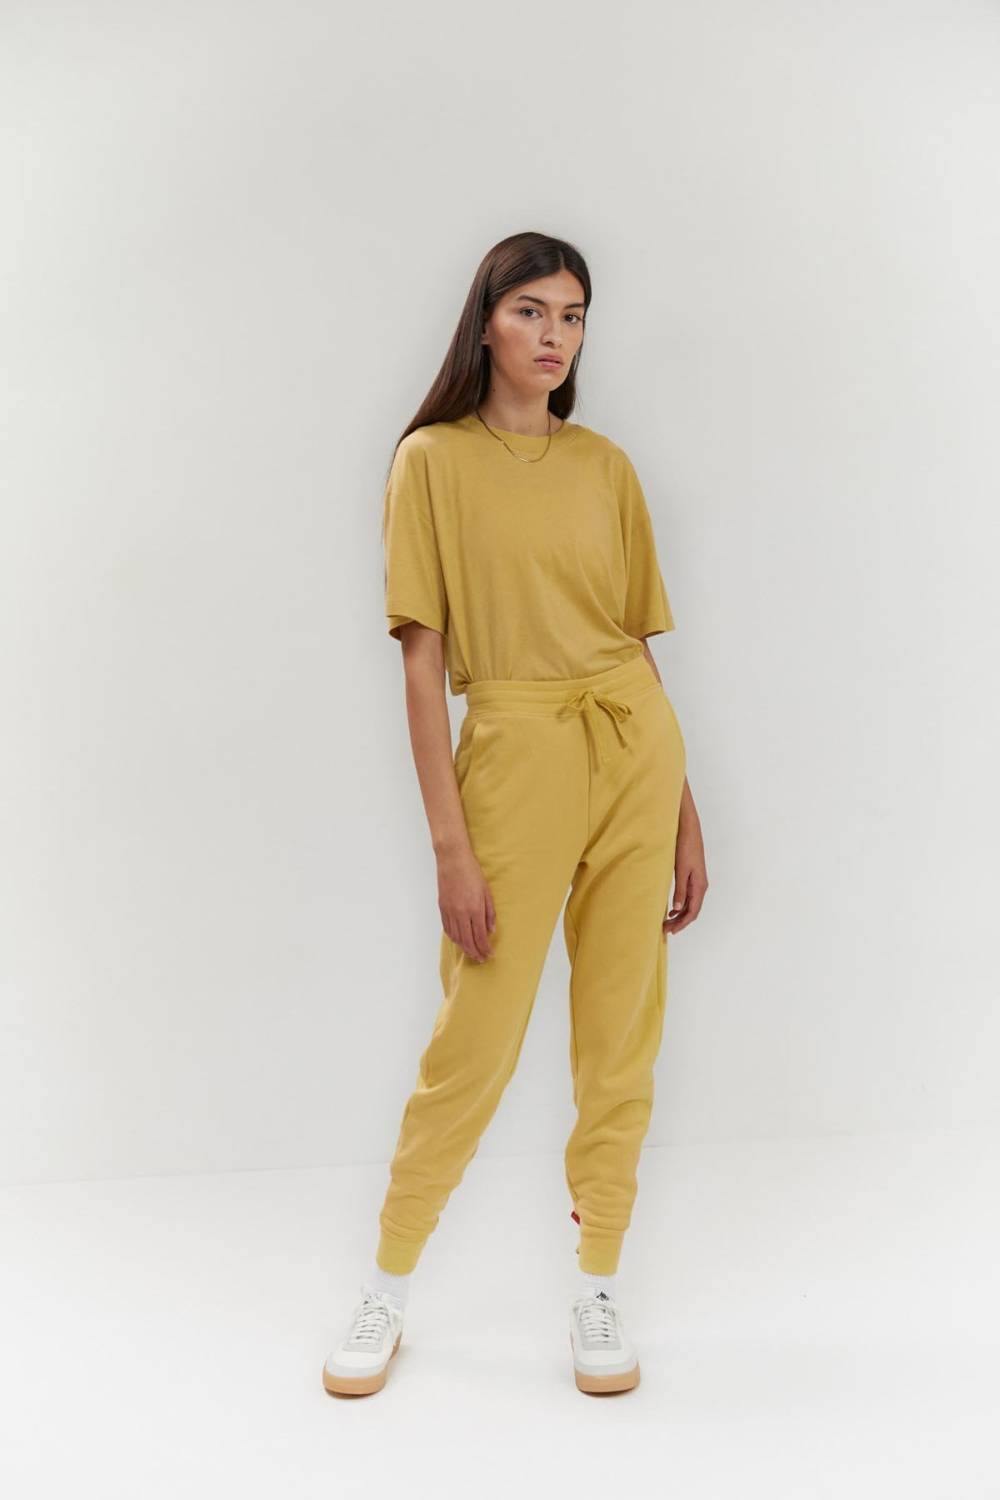 affordable sustainable loungewear girlfriend collective